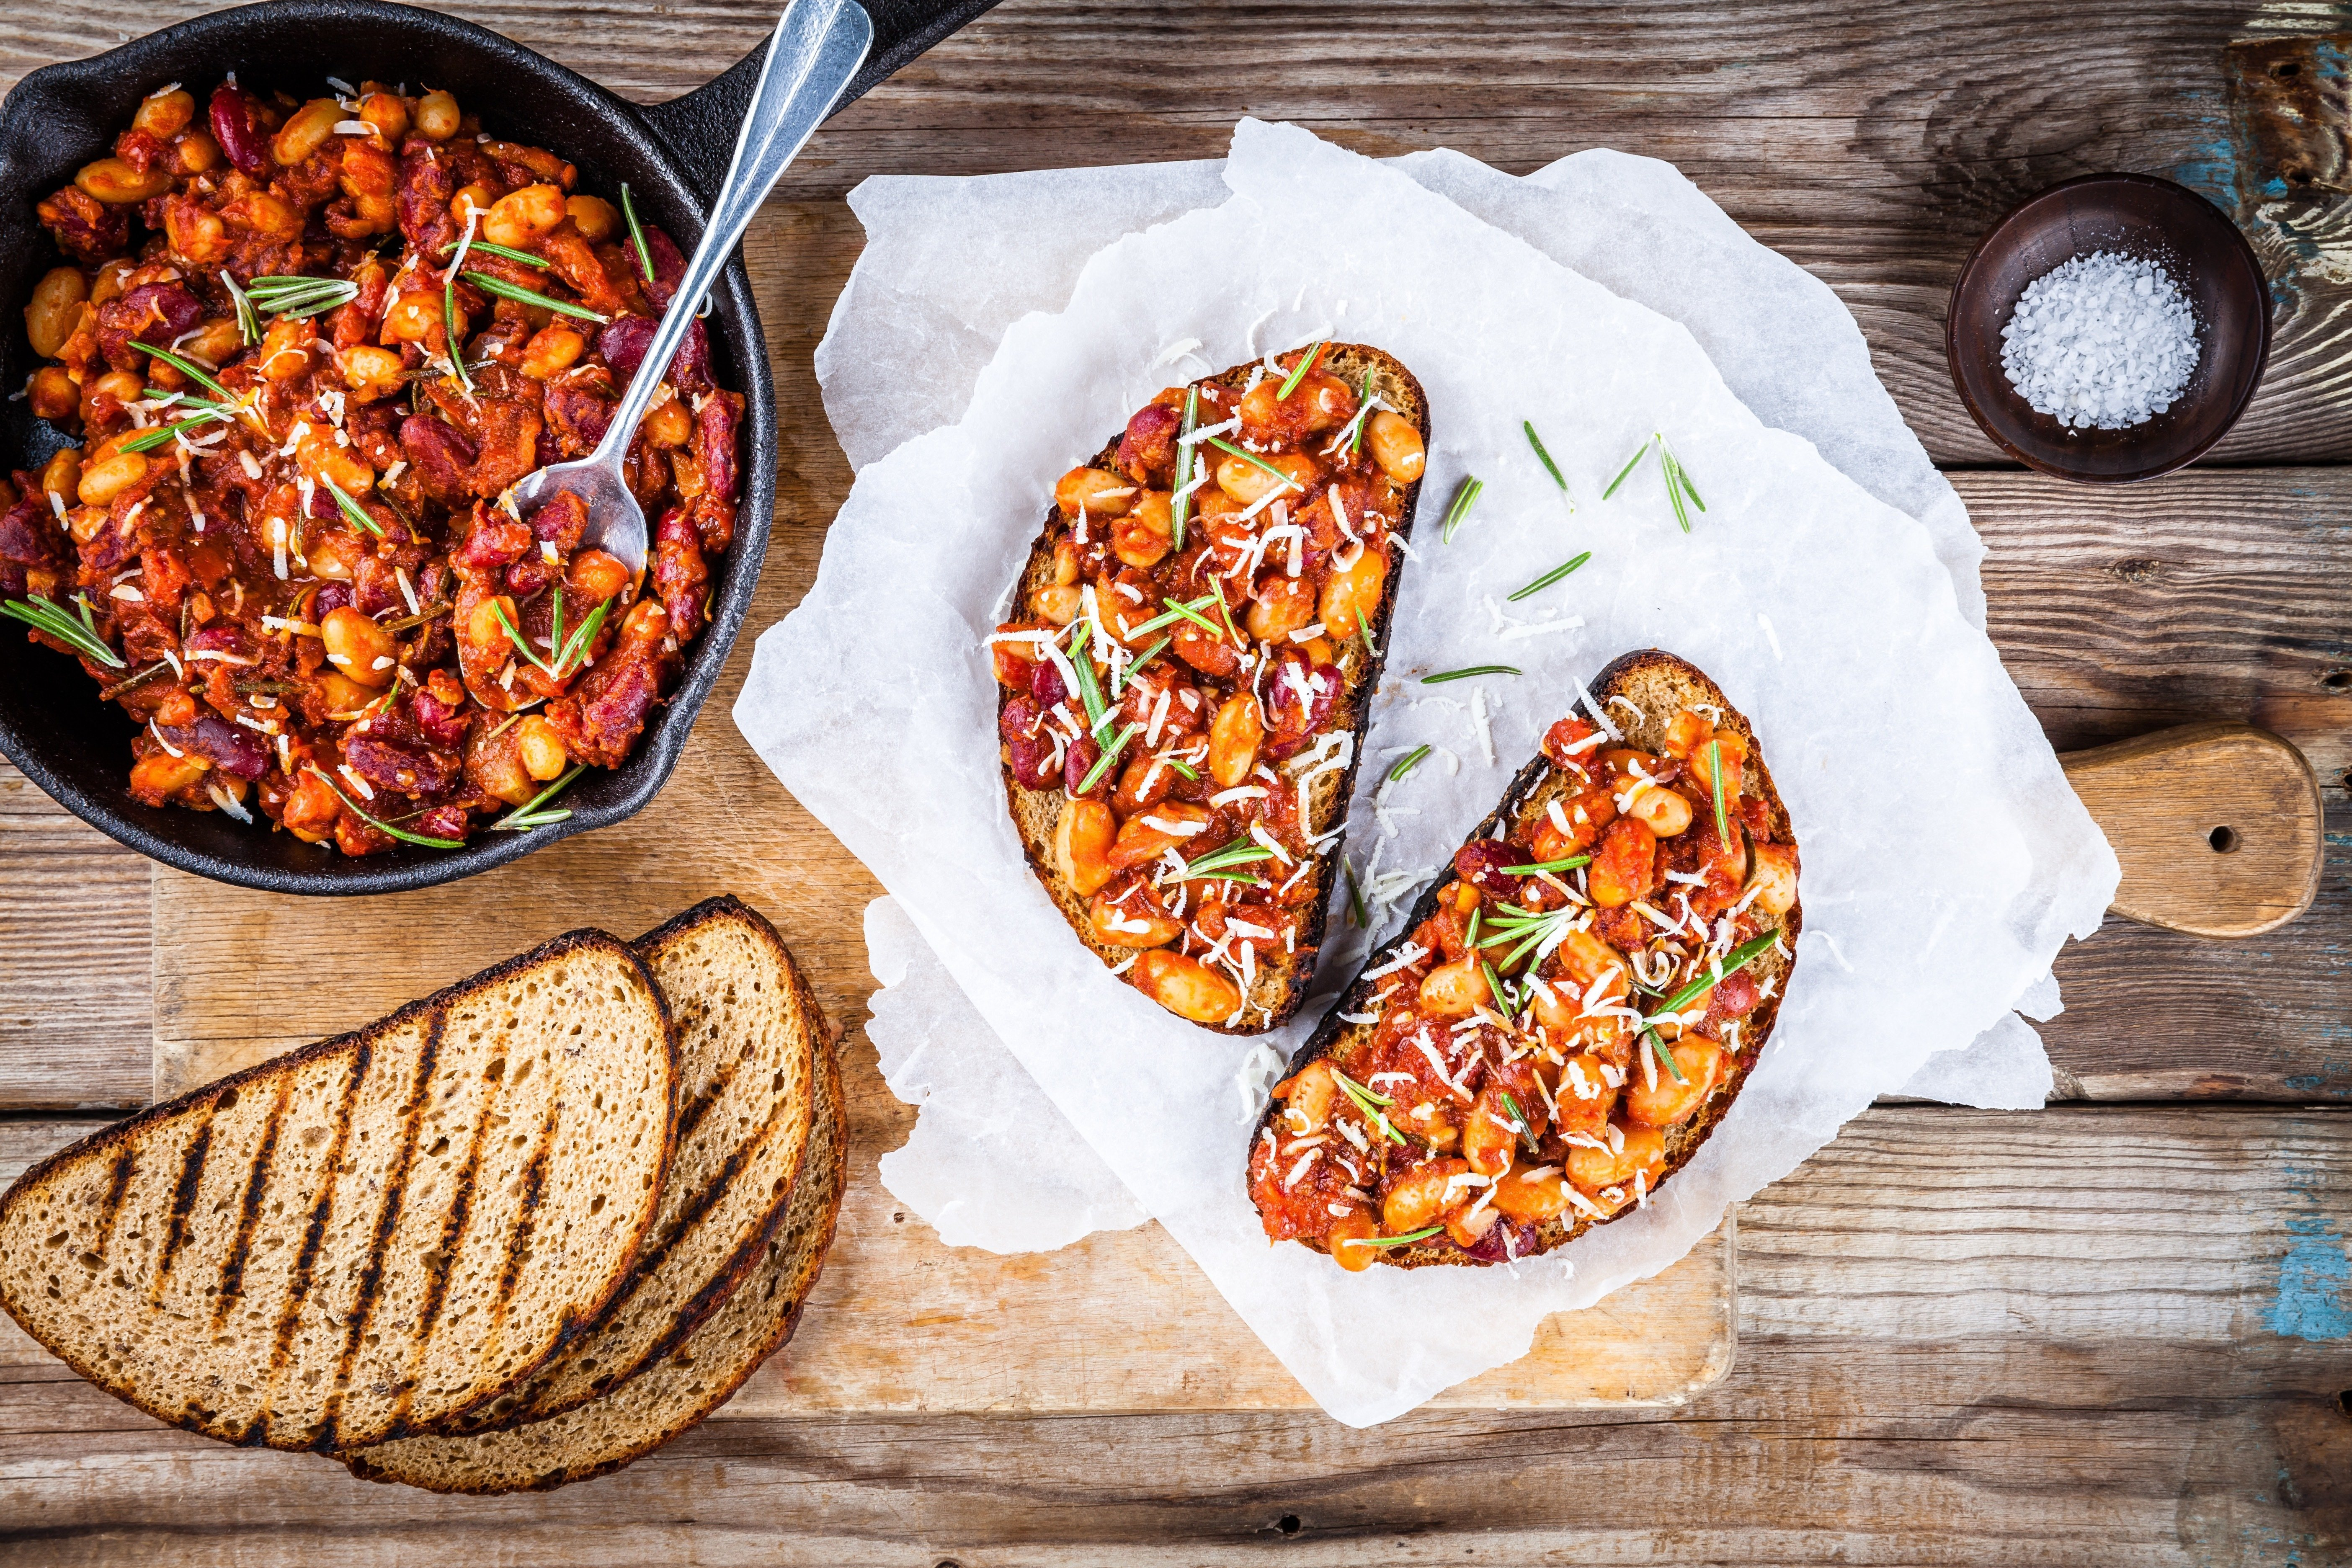 Photo of a well prepared delicious meal | Image: Shutterstock